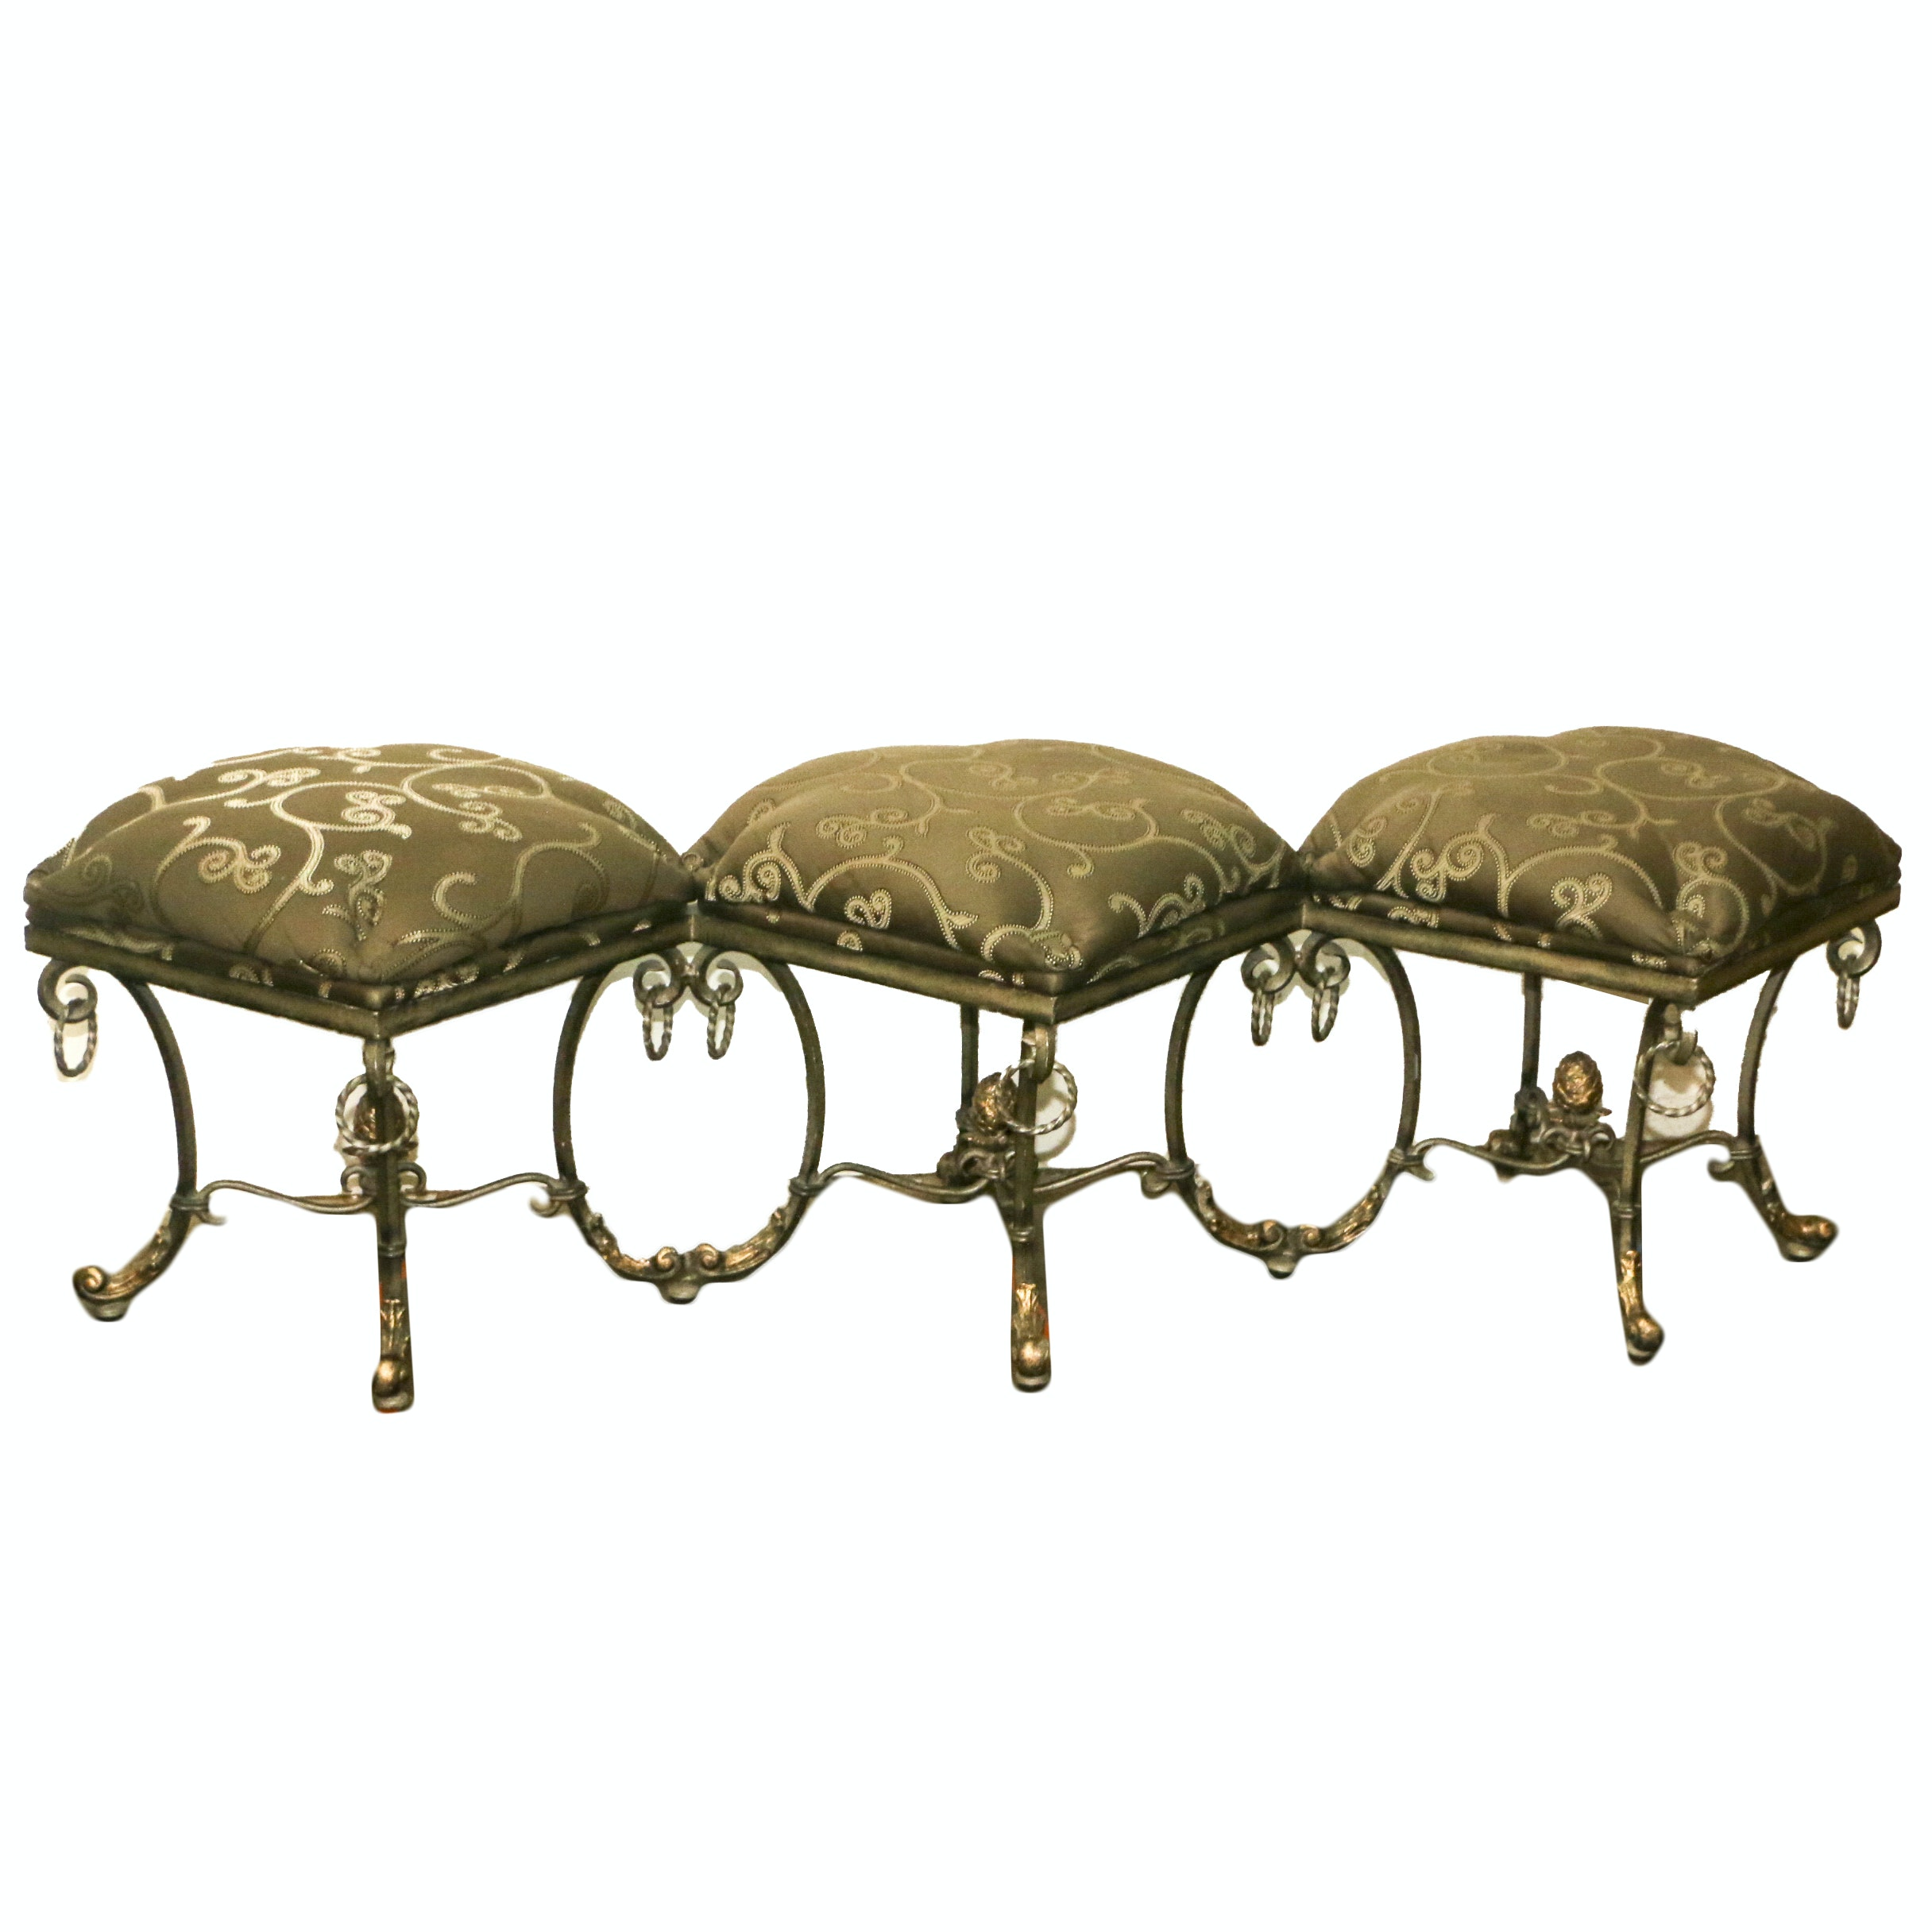 Neoclassical Style Metal Frame Upholstered Three-Seat Bench, 21st Century